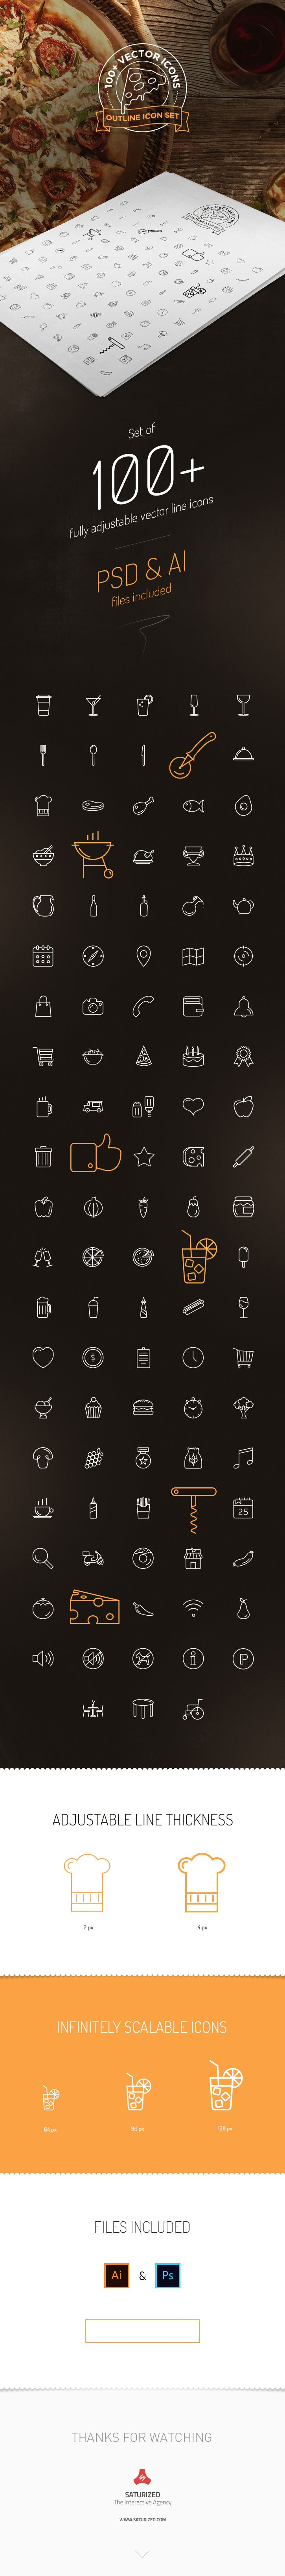 Free Download : 100+ Outline Icons For Restaurant or Pizza House Website (AI,PSD)